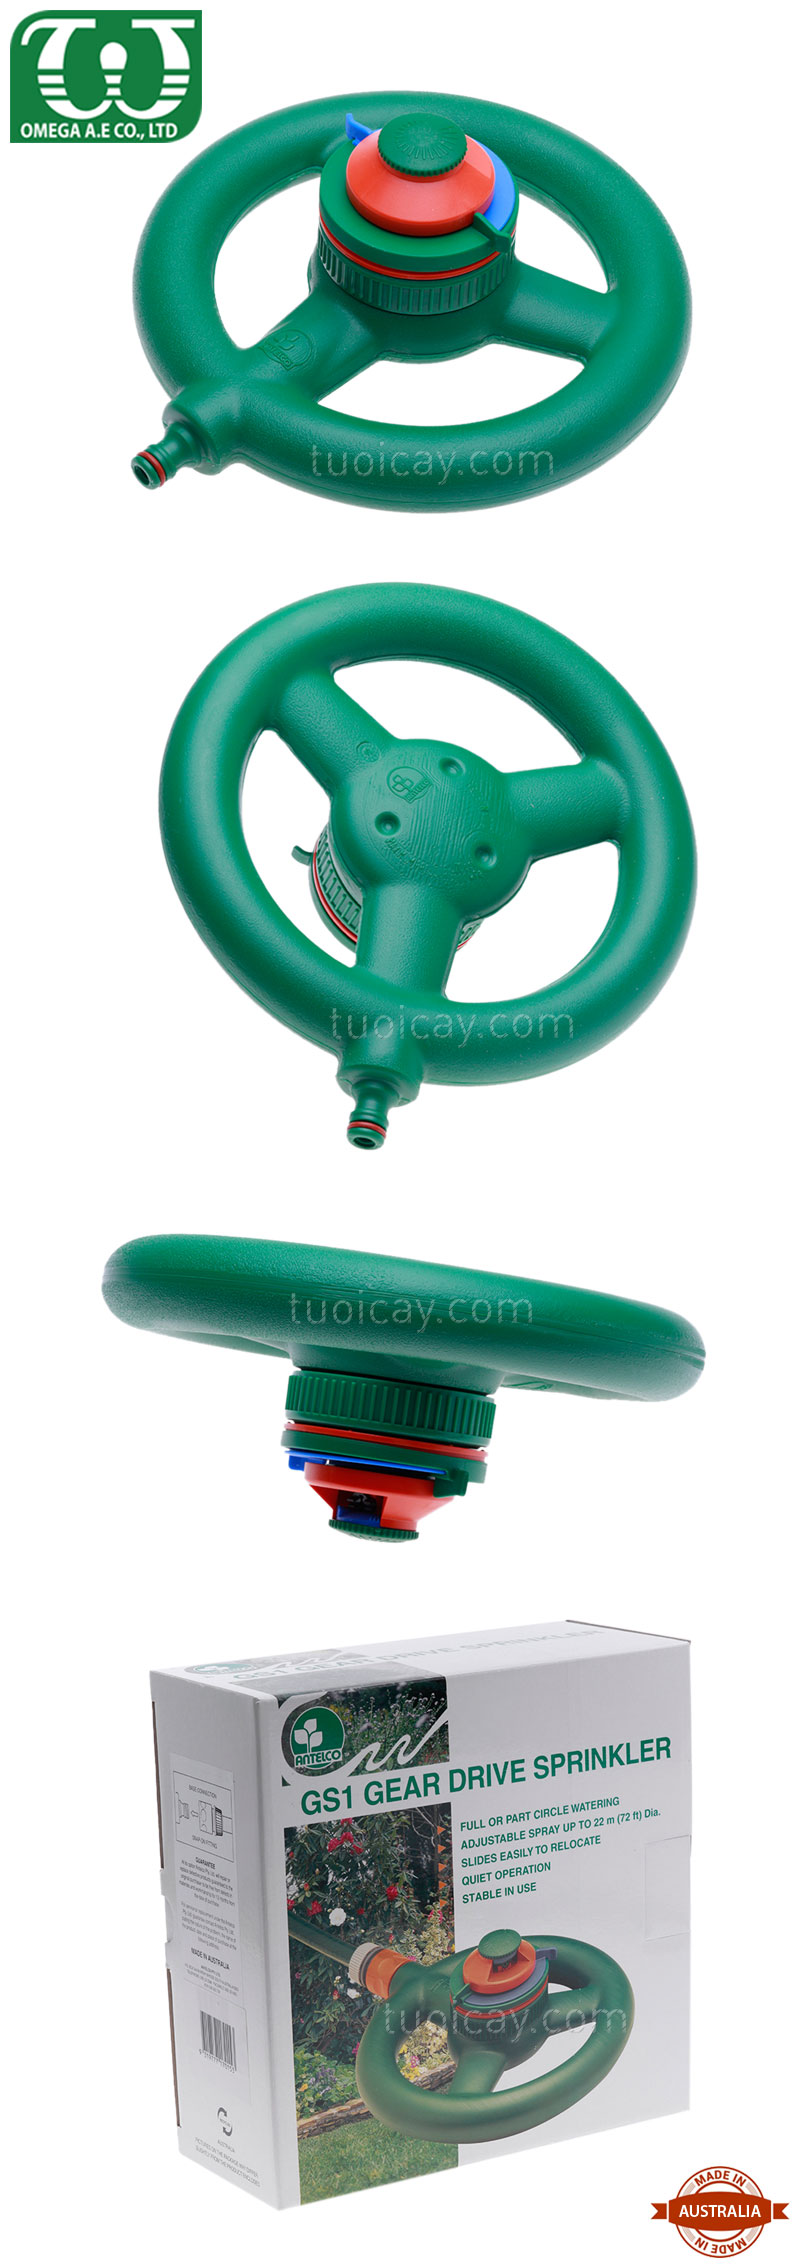 bec tuoi cay Gear Drive Sprinkler 2